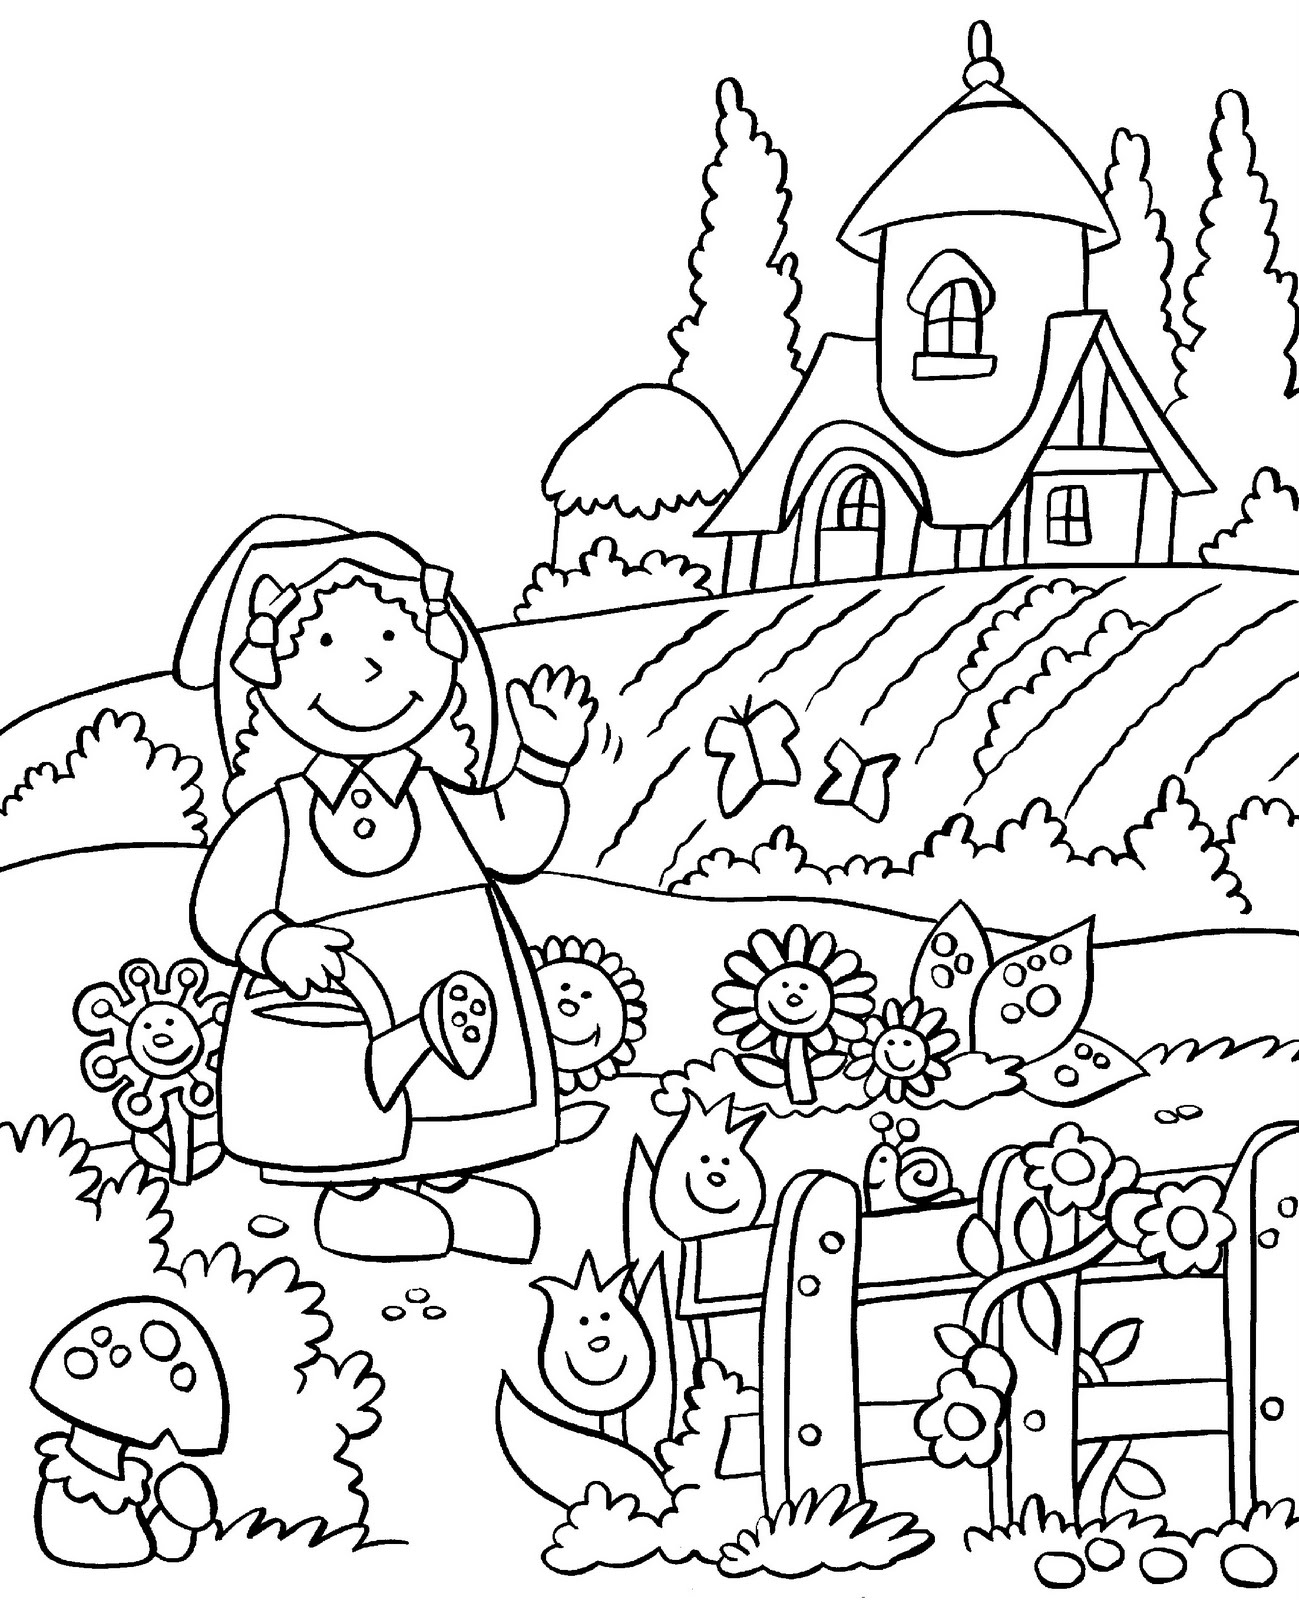 garden coloring page flower garden coloring pages to download and print for free